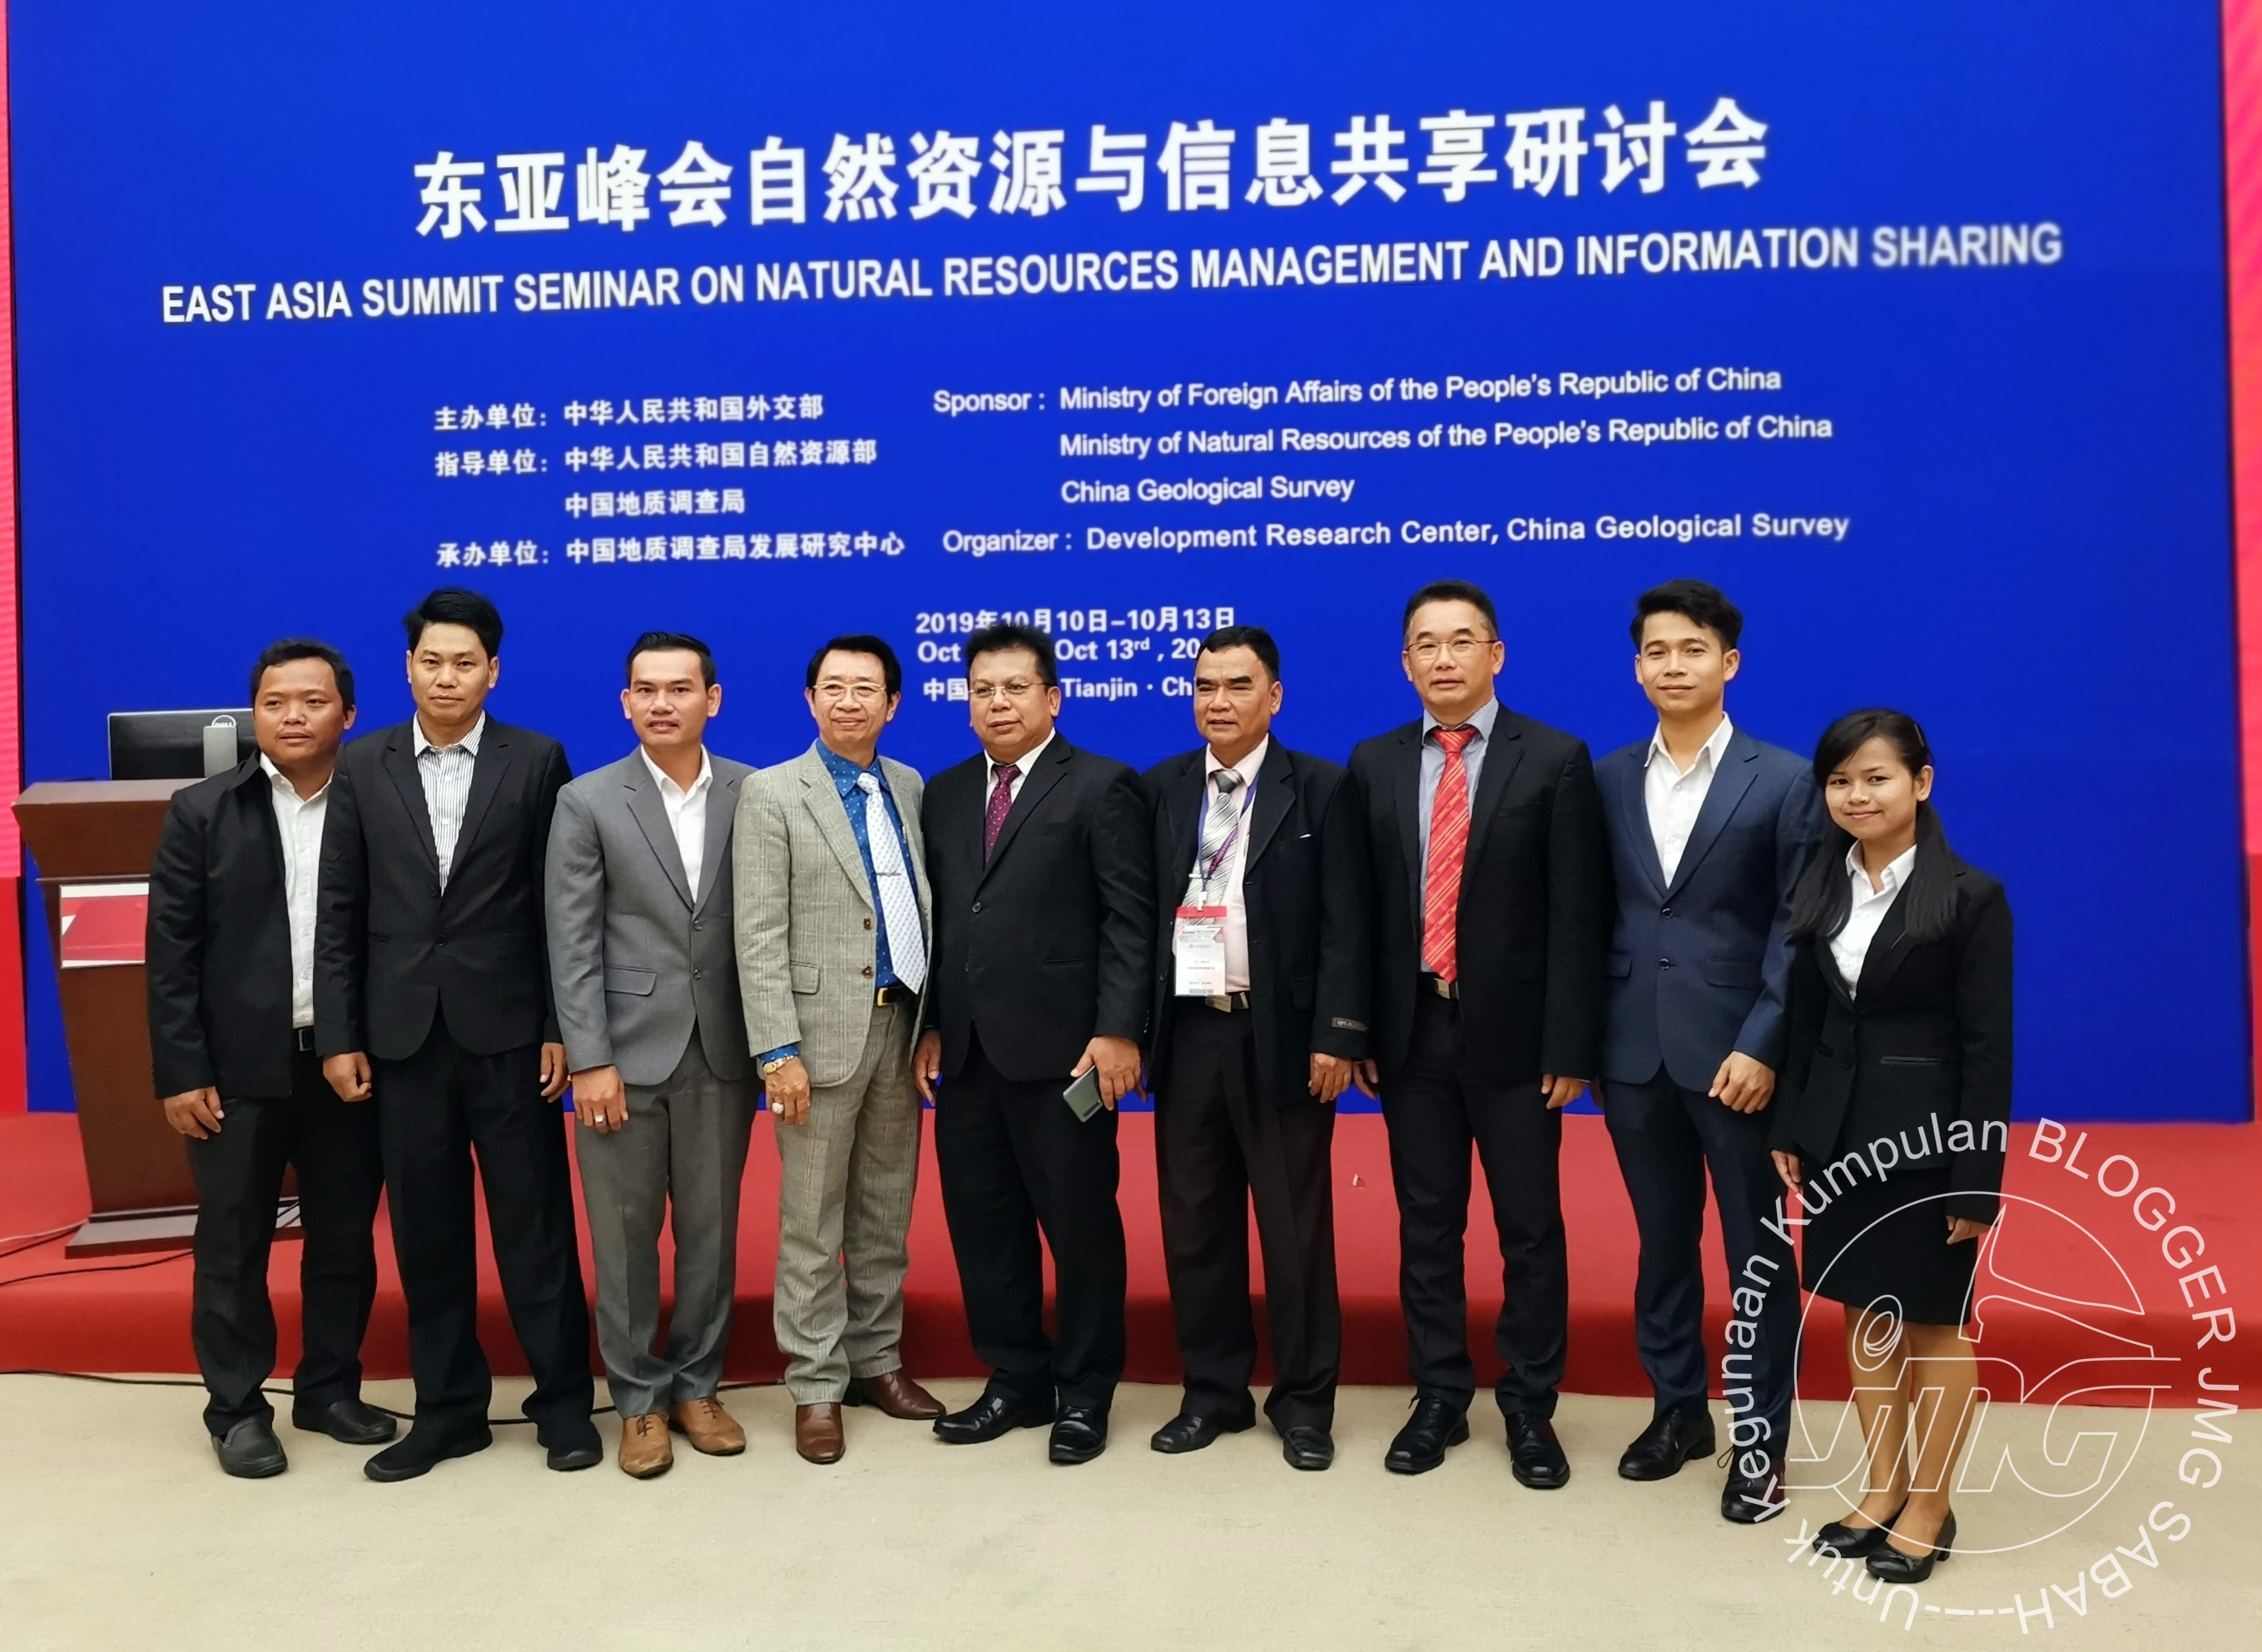 East Asia Summit Seminar On Natural Resources Management and Information Sharing